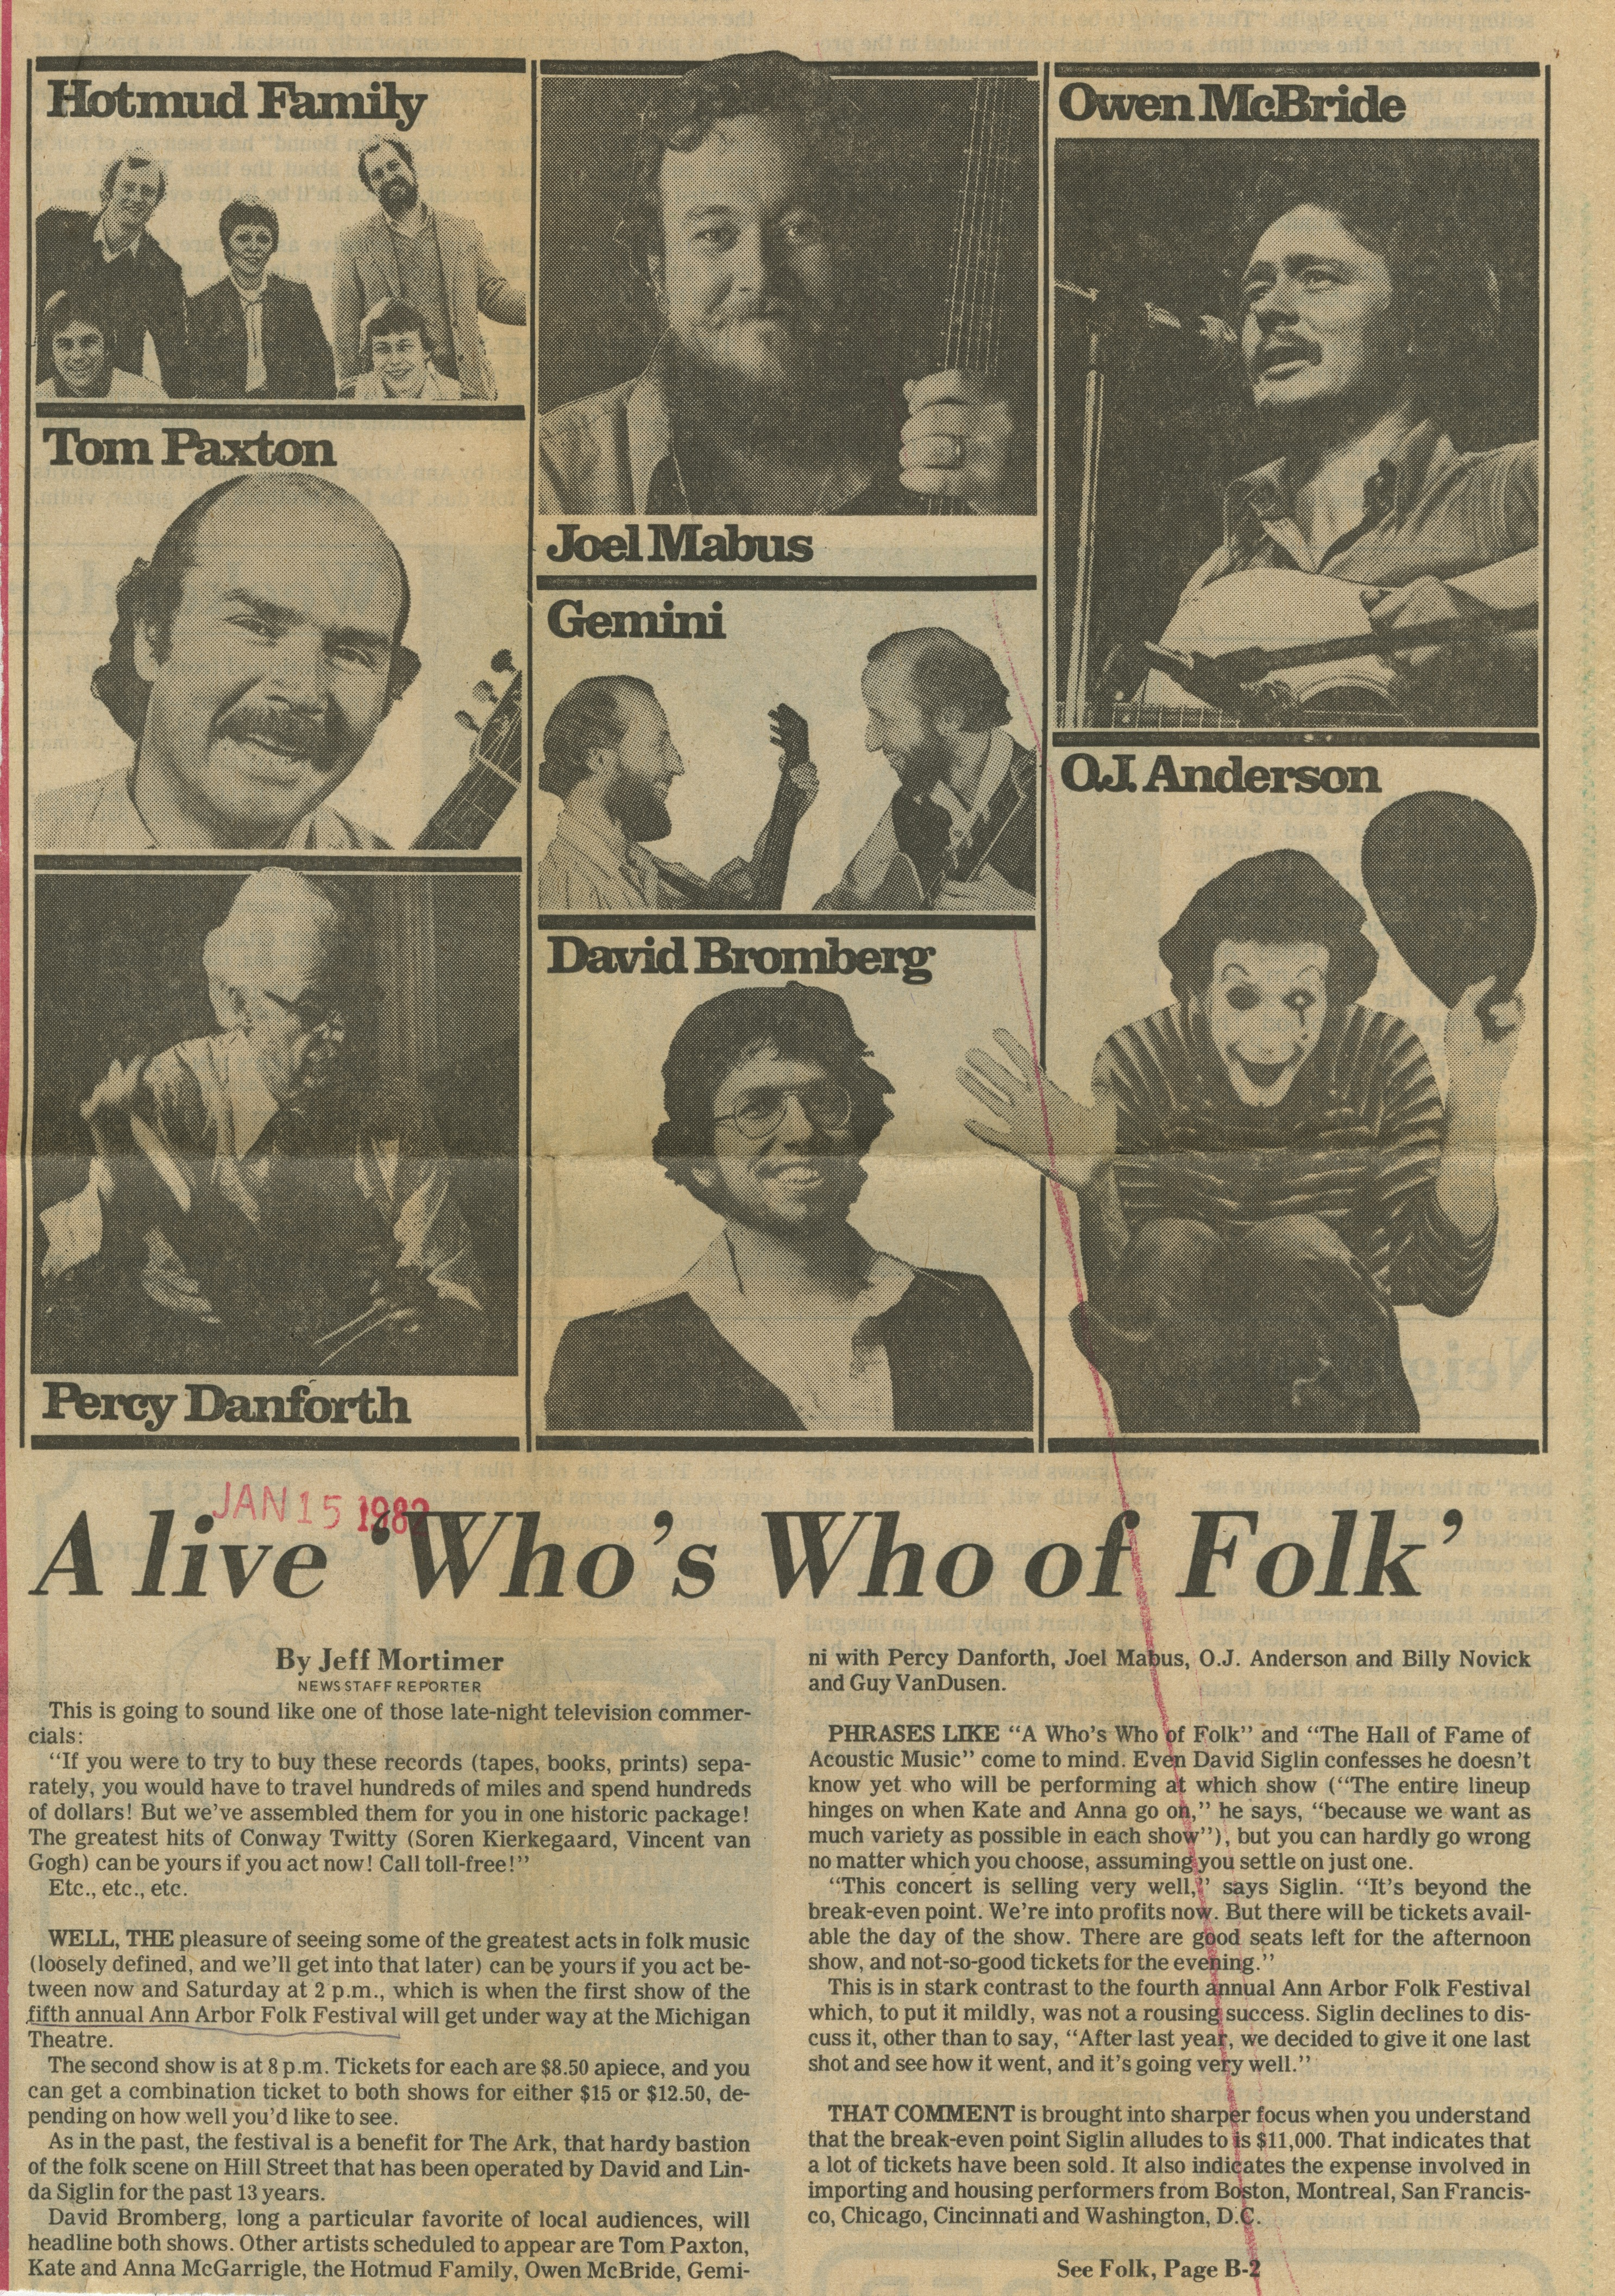 A live 'Who's Who of Folk' image